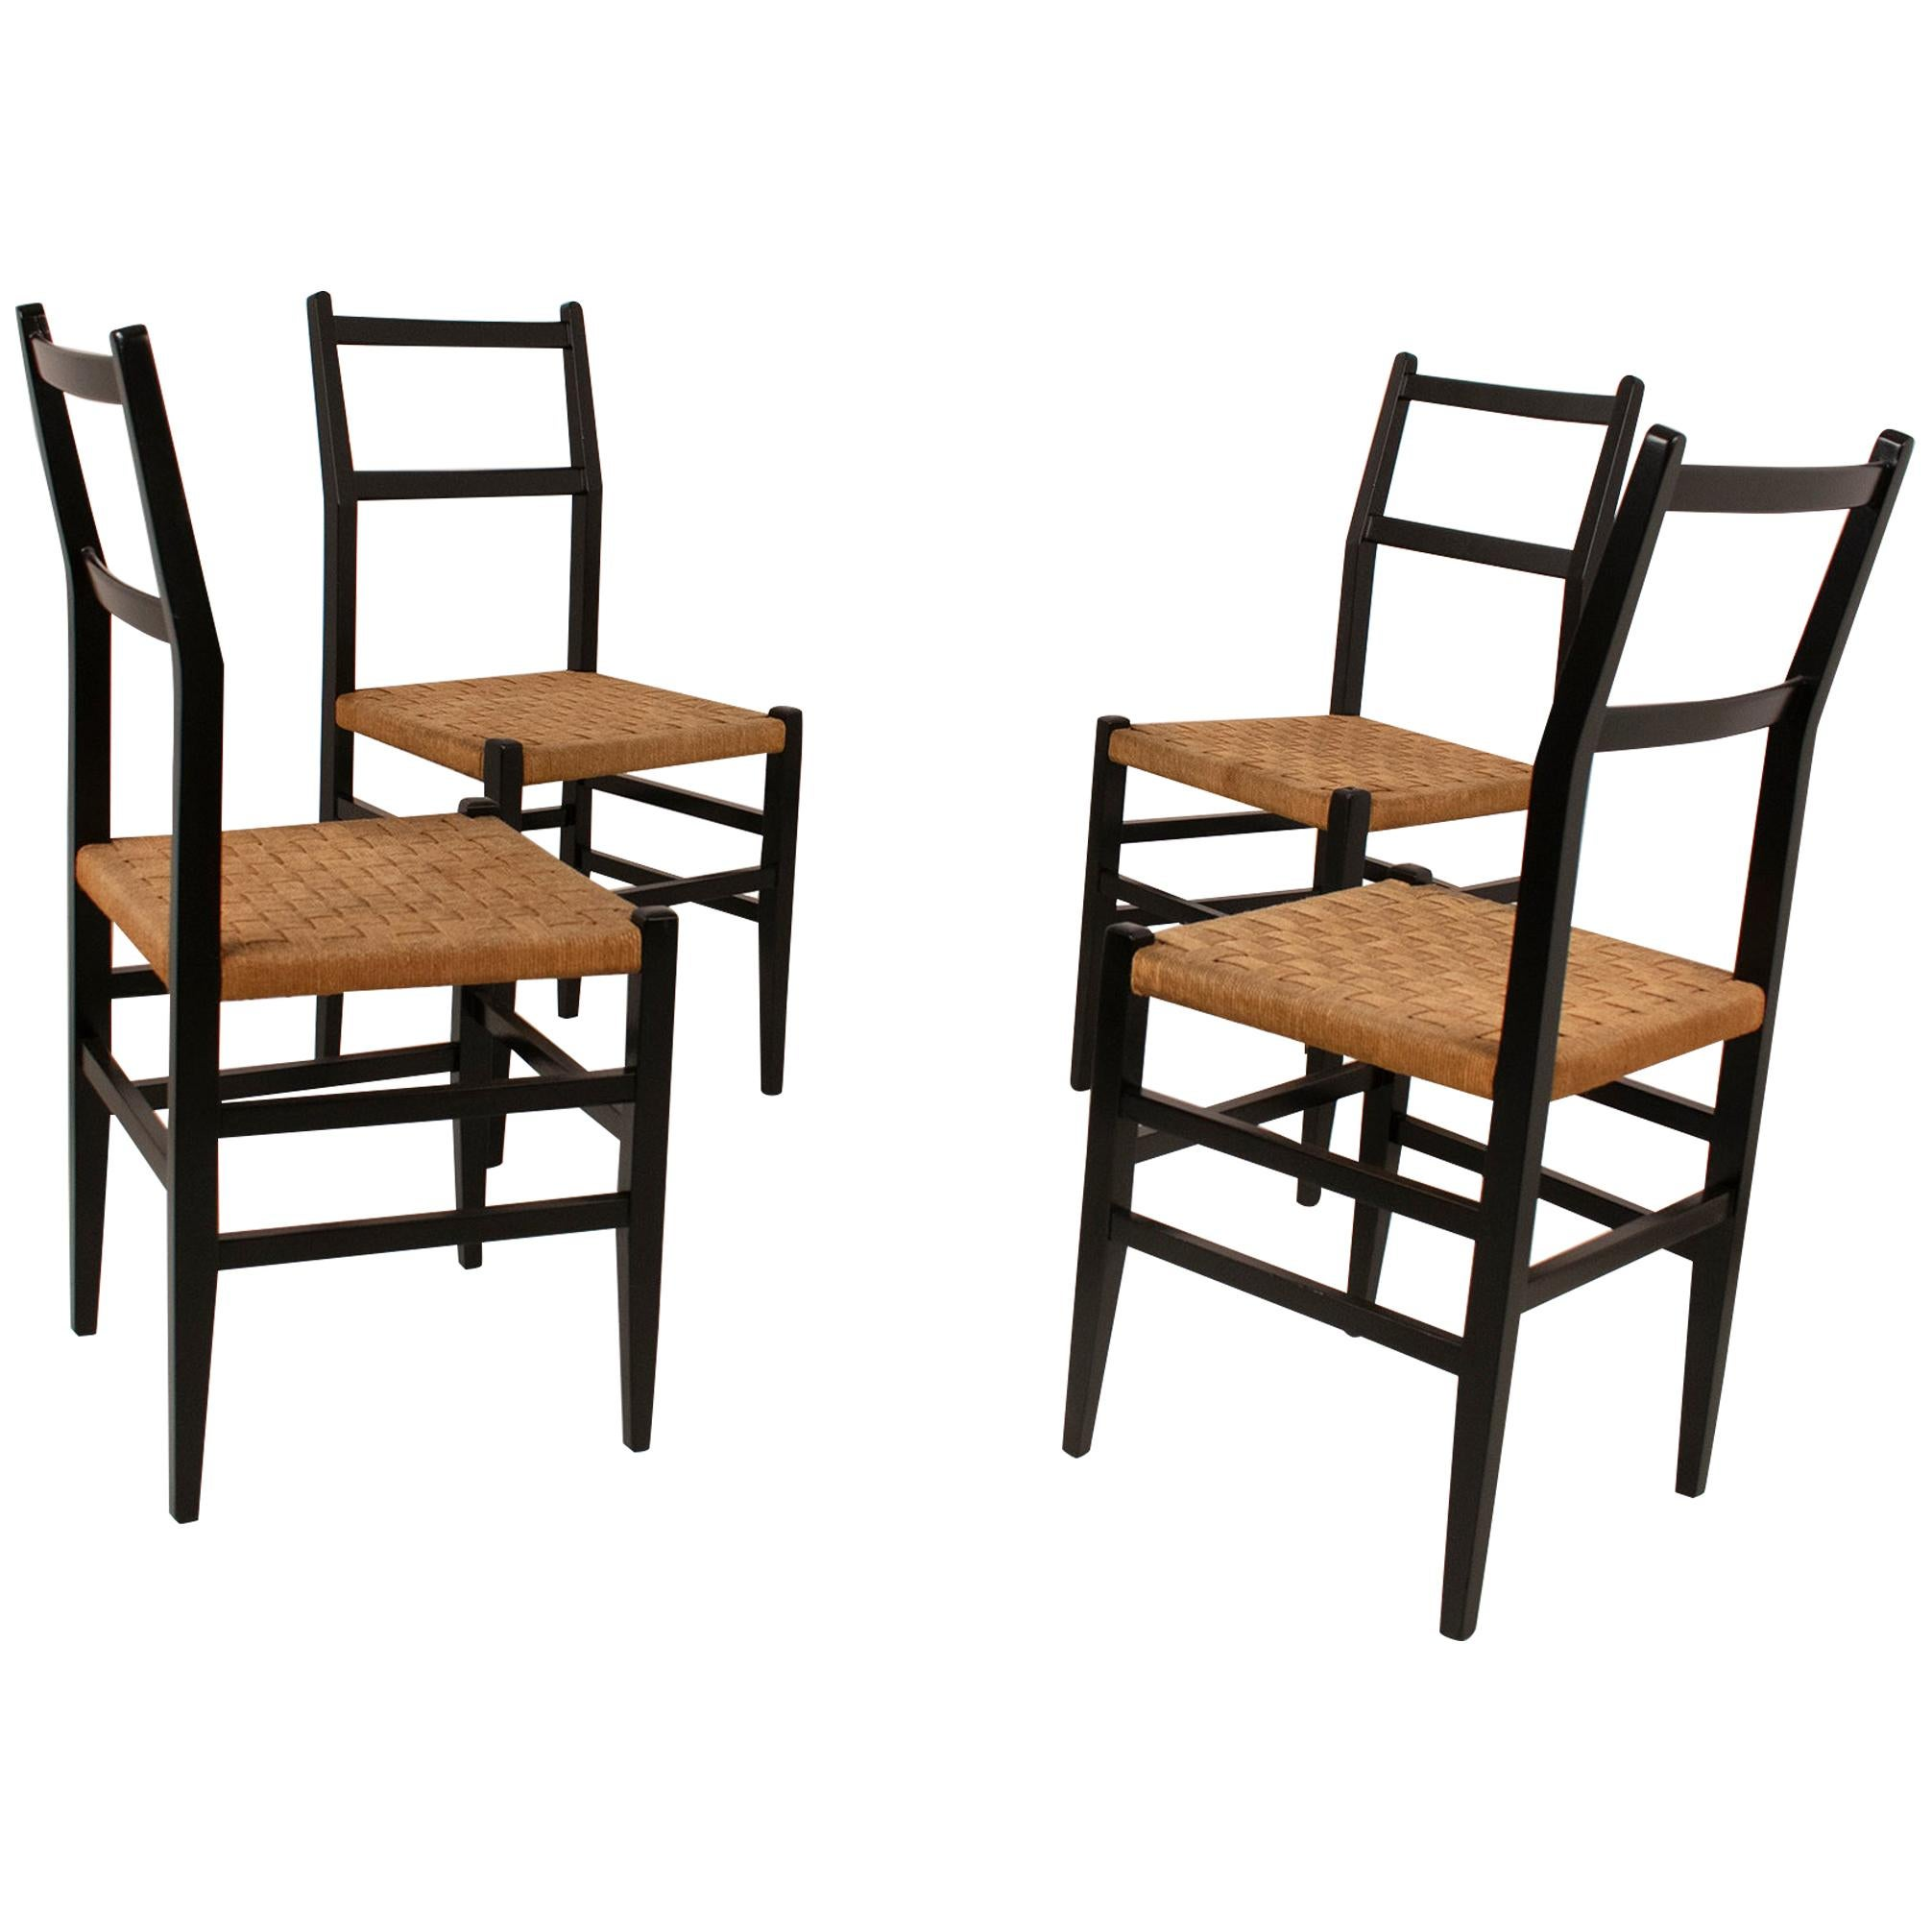 Set of 4 Chairs, Attributed to Gio Ponti, 1950s